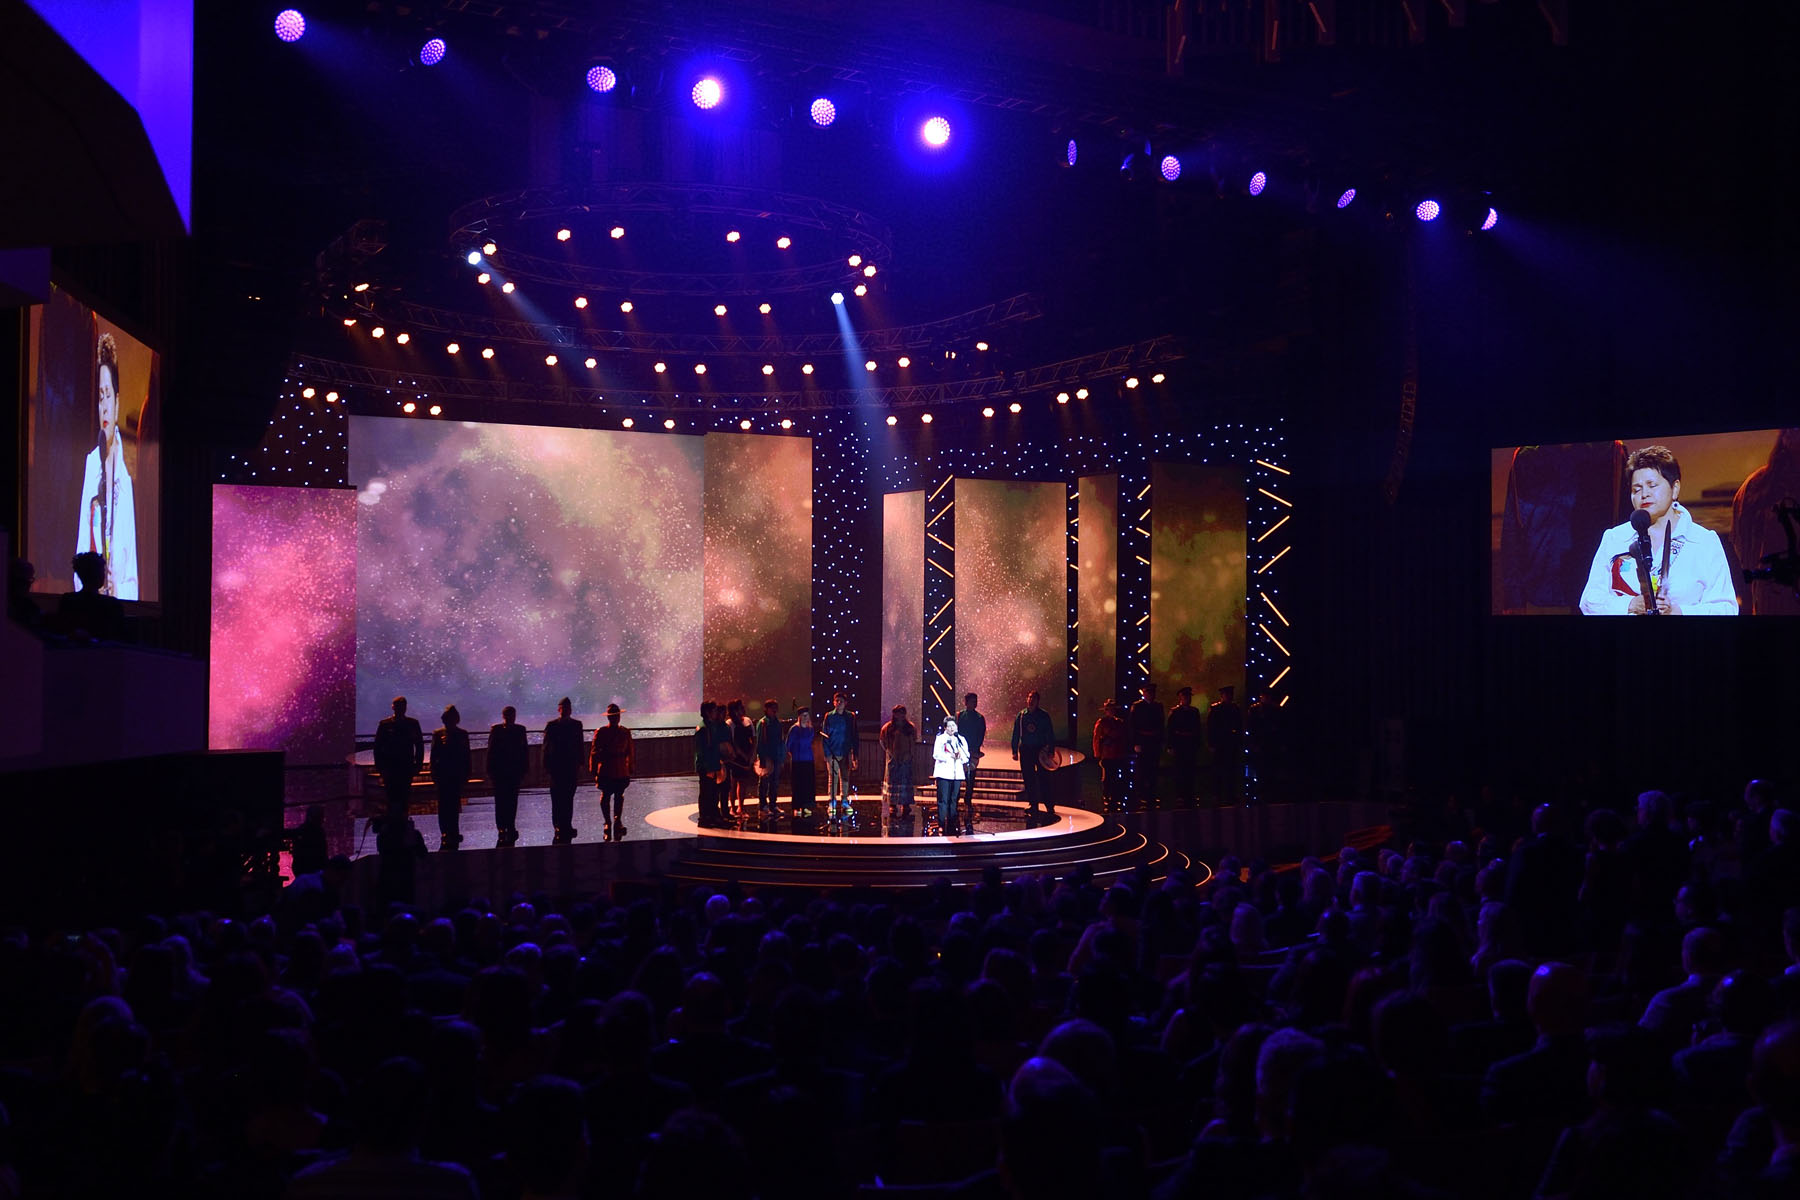 For the past 24 years, the Indspire Awards have celebrated the significant contributions of Indigenous people in Canada by fostering self-esteem and pride within the Indigenous community and by providing outstanding role models for their youth.